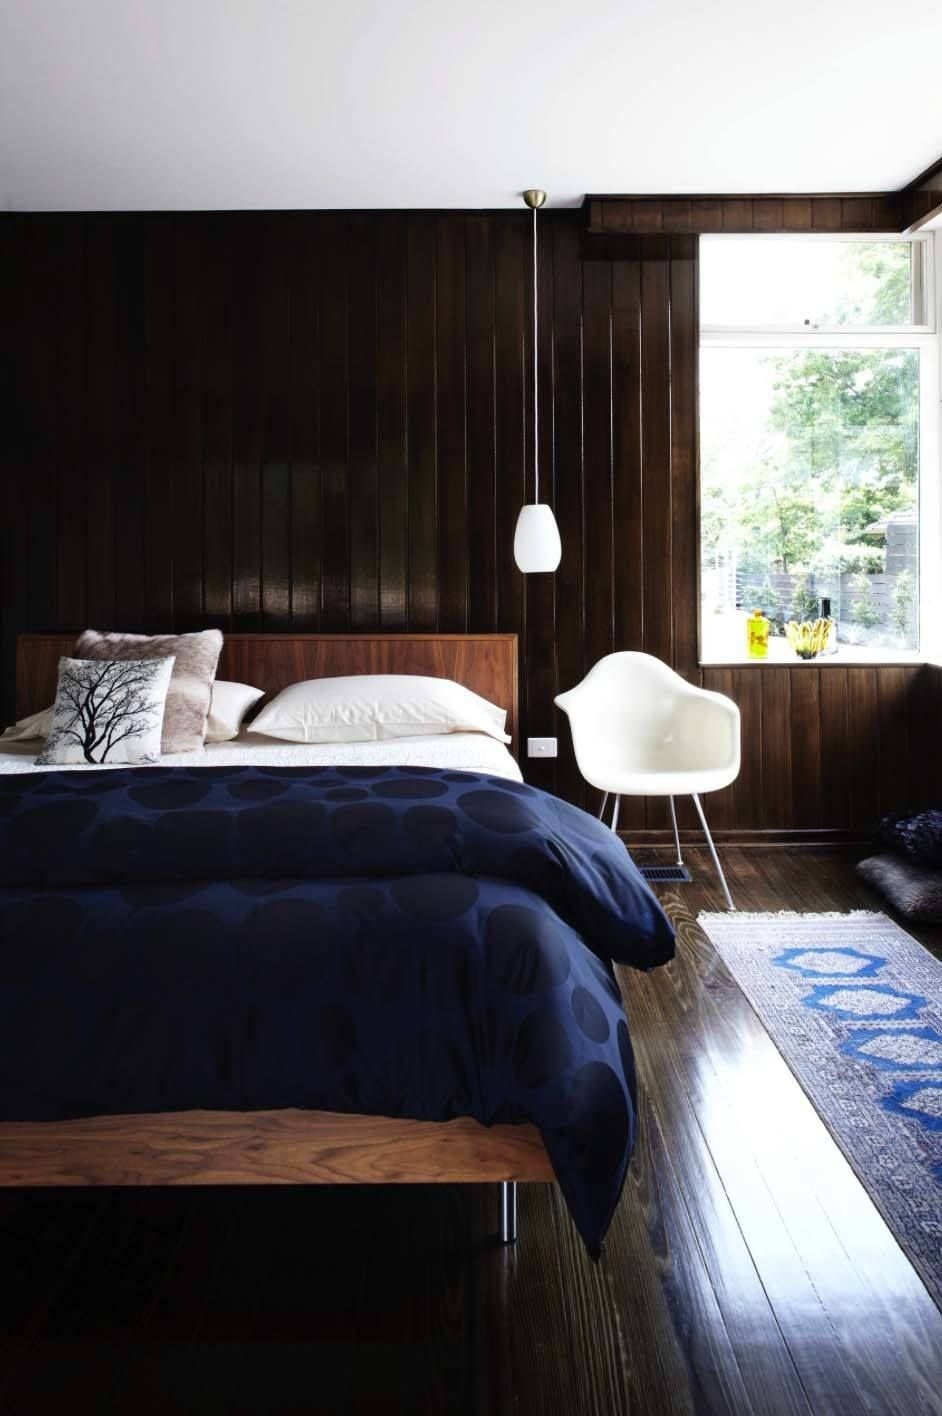 A simple way to bring in the blues cozy bedding for the chilly days ahead from sharyn cairns